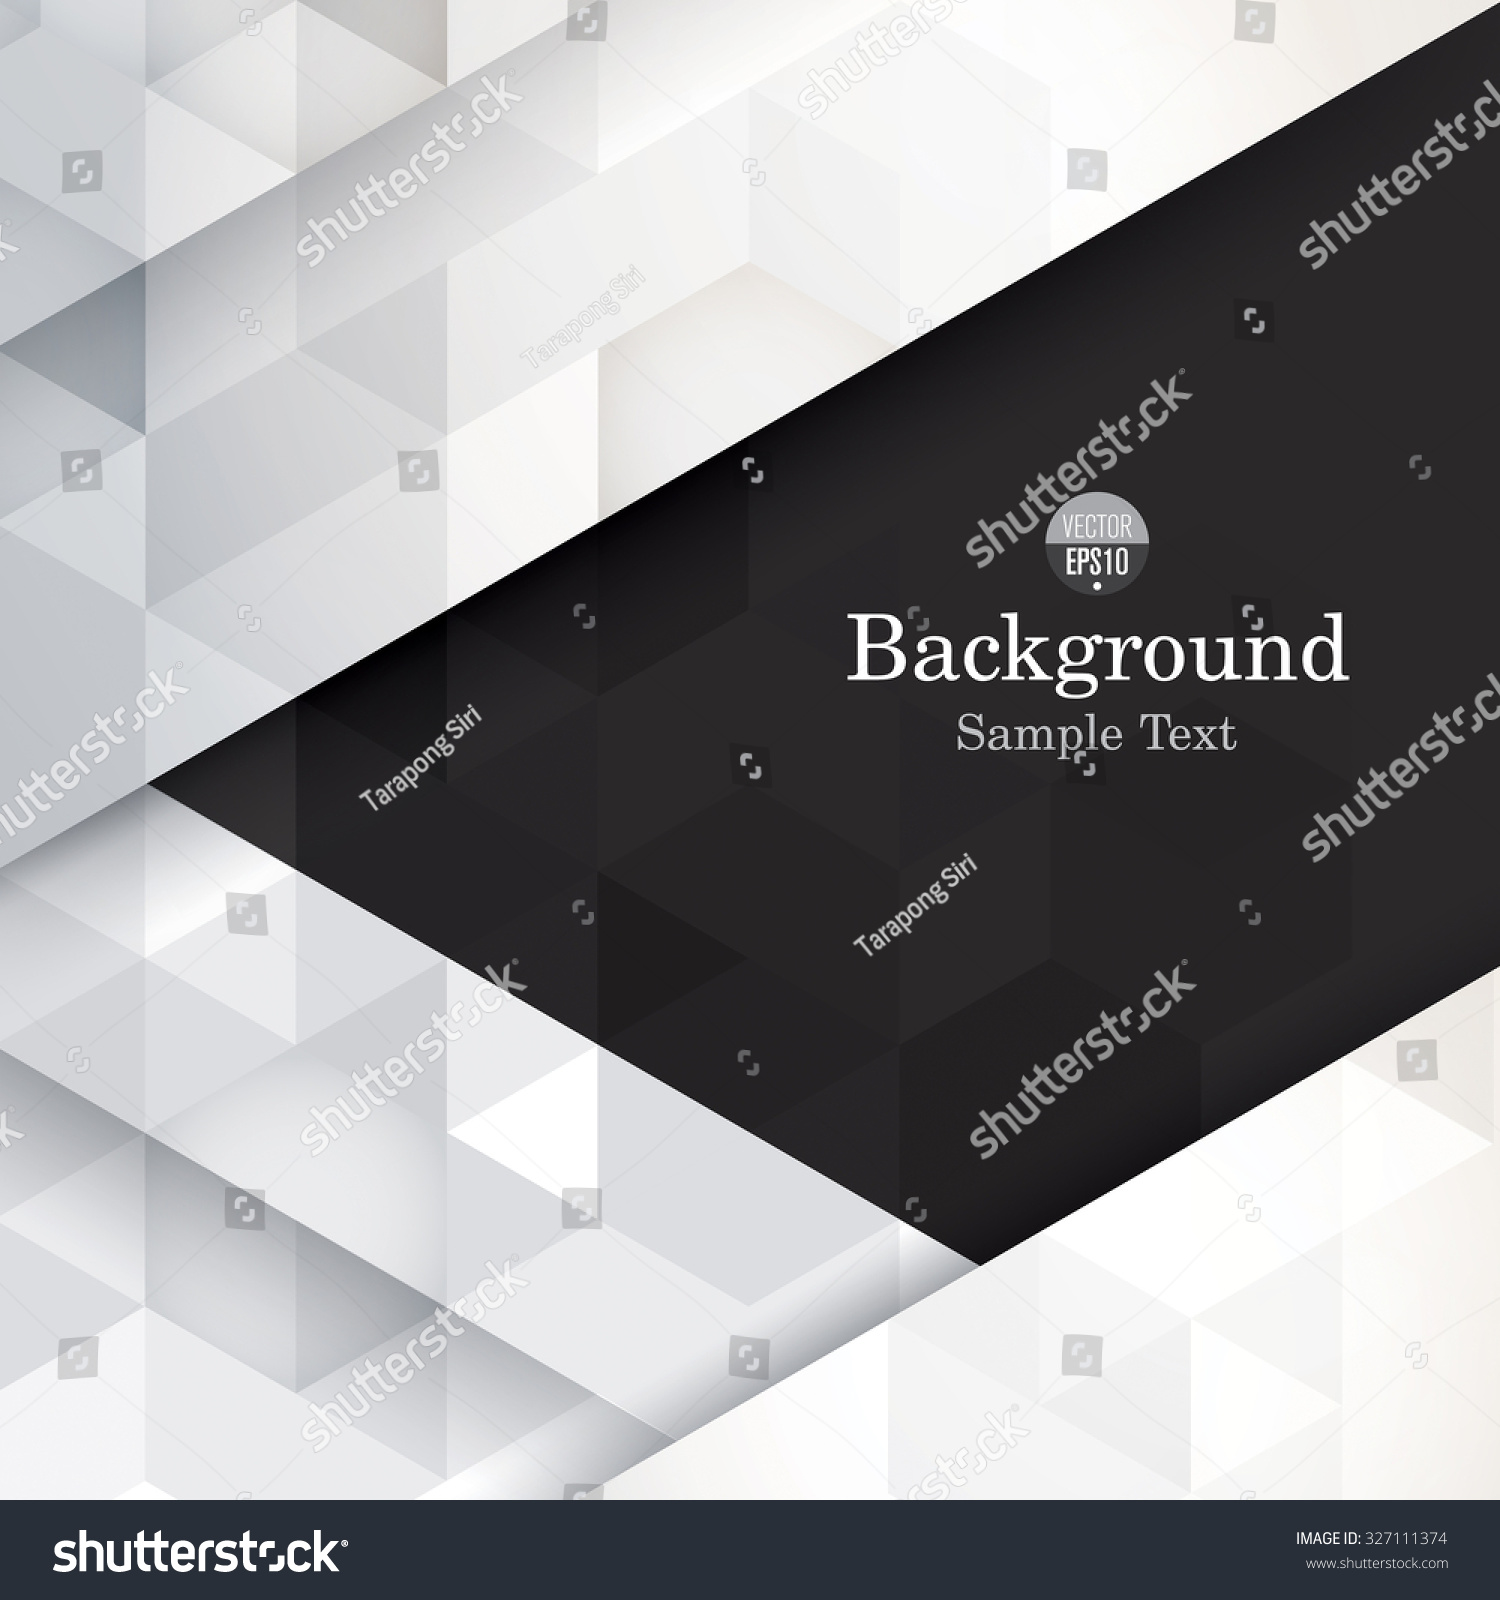 Black and white abstract background vector Can be used in cover design book design website background CD cover advertising